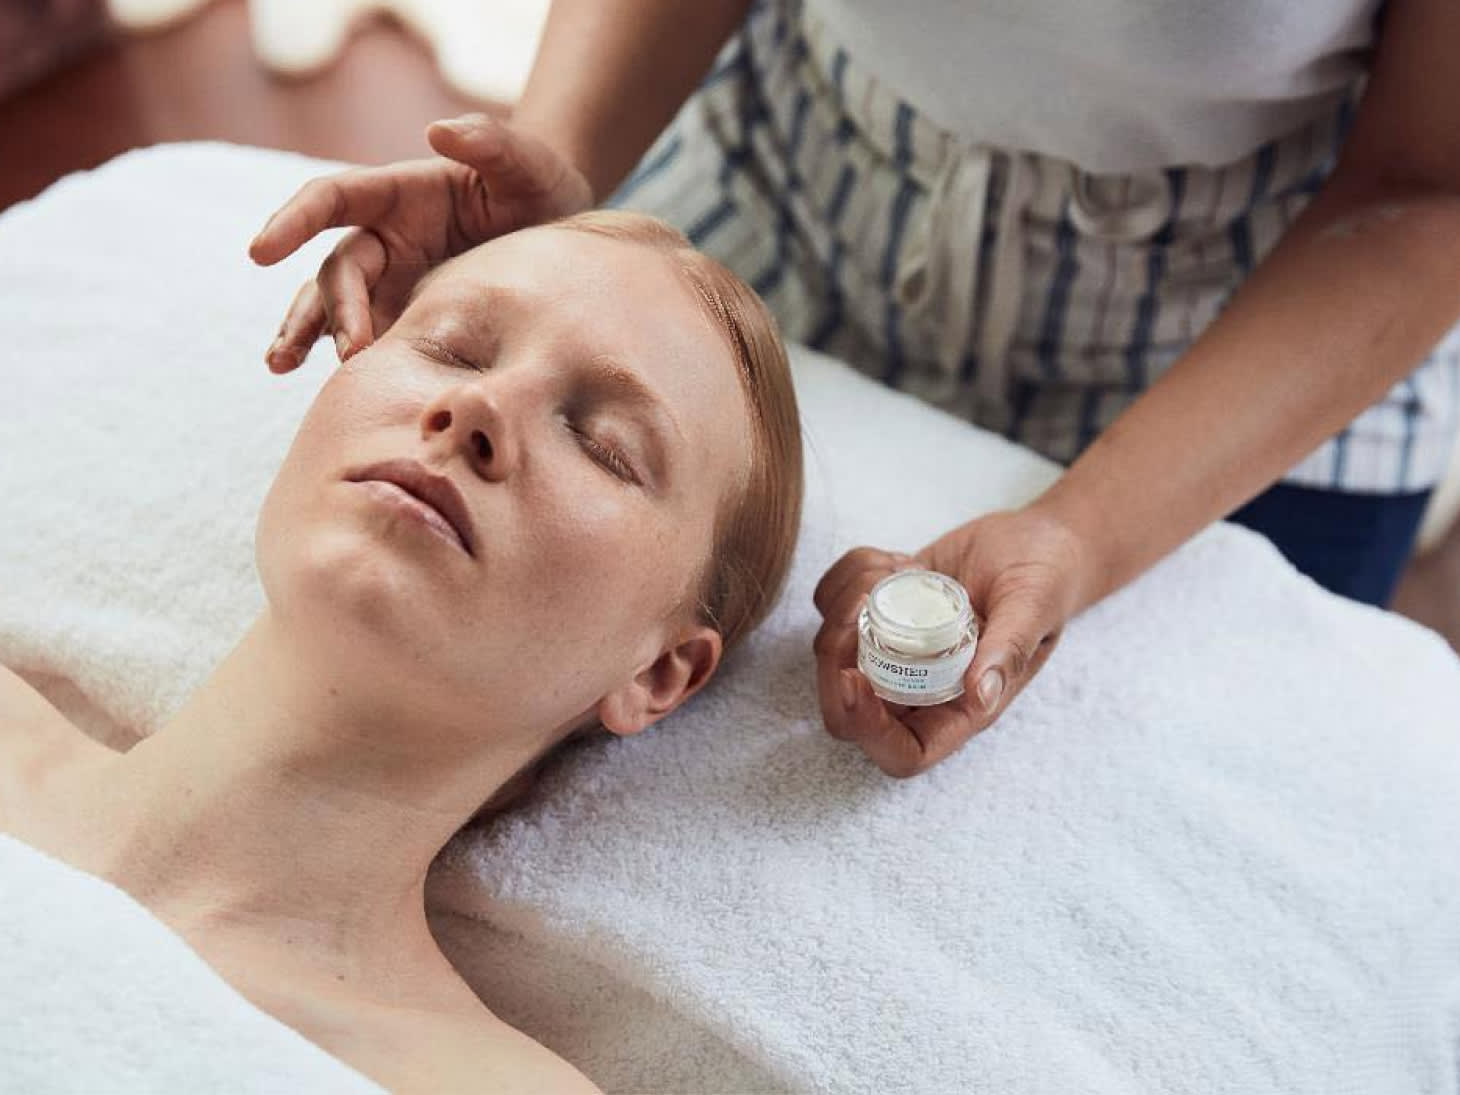 A woman on a bed receiving a facial treatment.